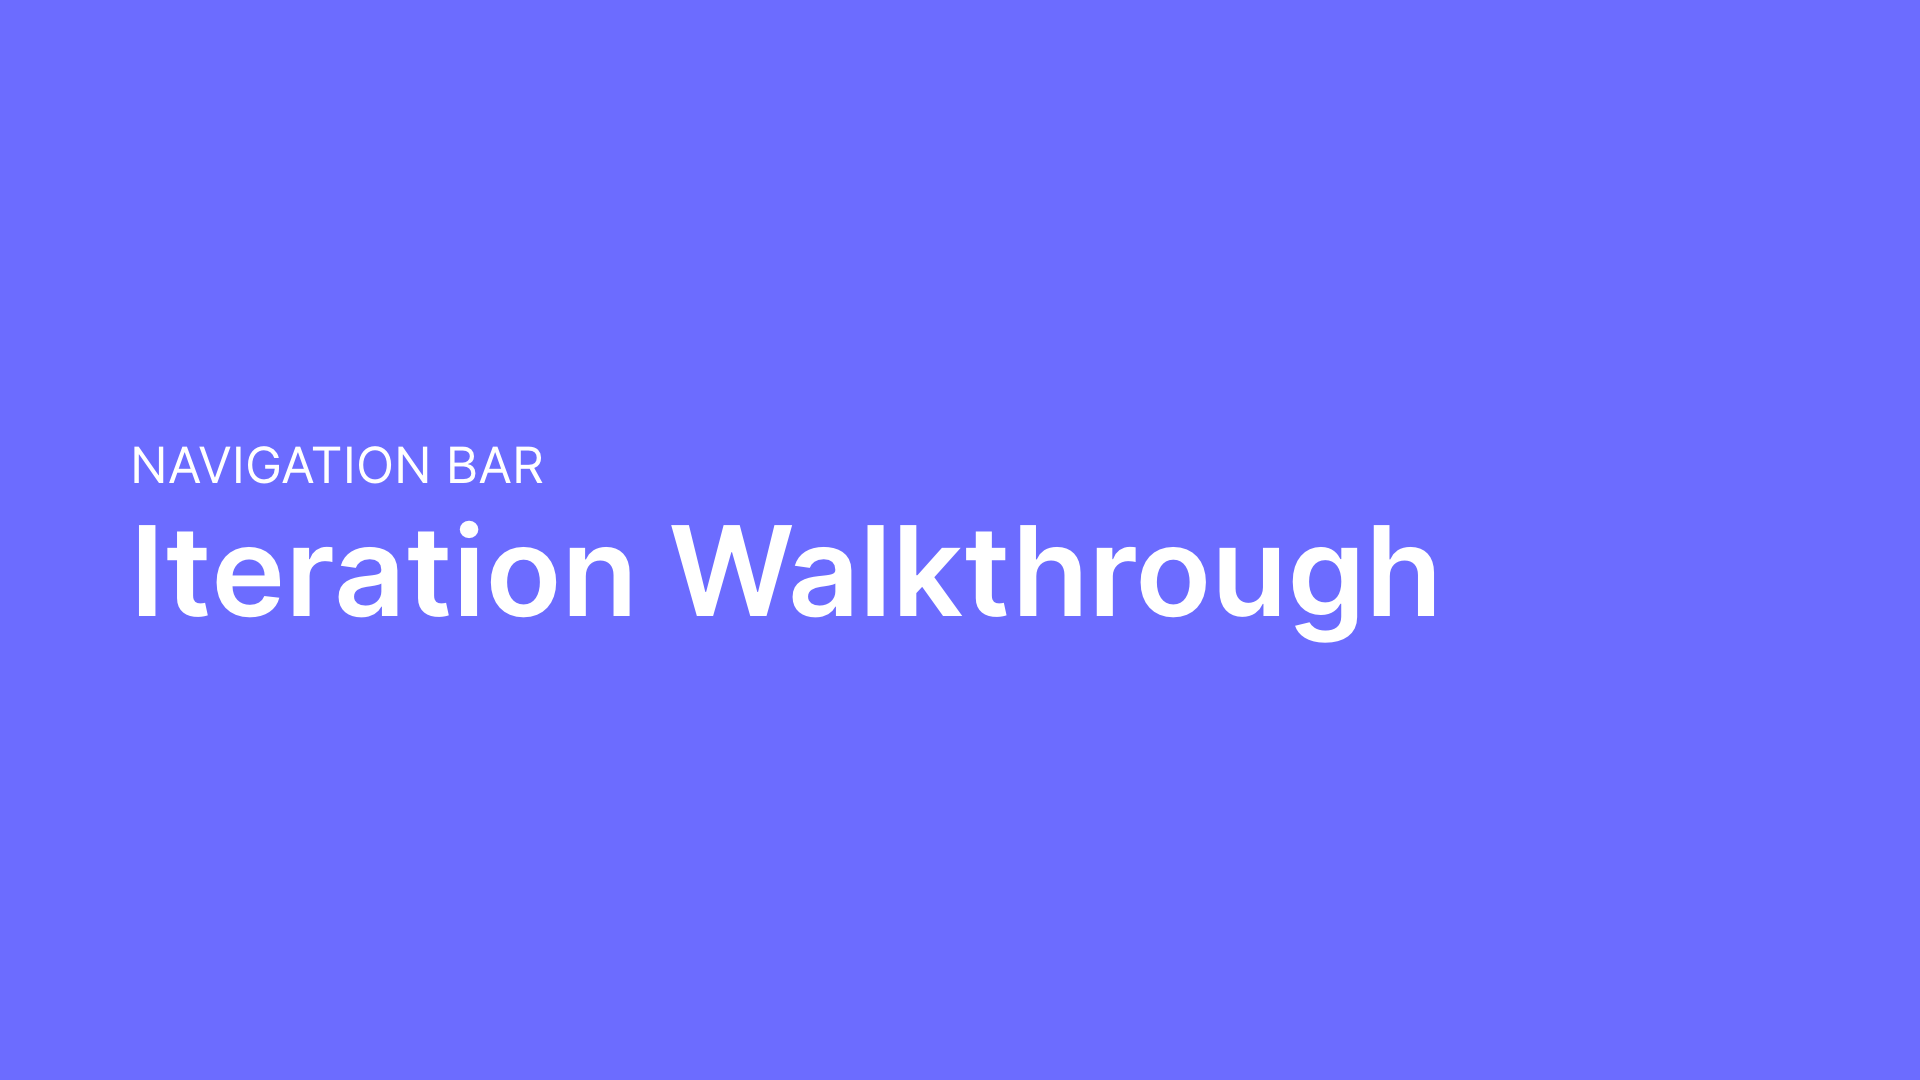 "The subtitle ""Navigation Bar"" appears in caps above the title ""Iteration Walkthrough"" against a purple background."